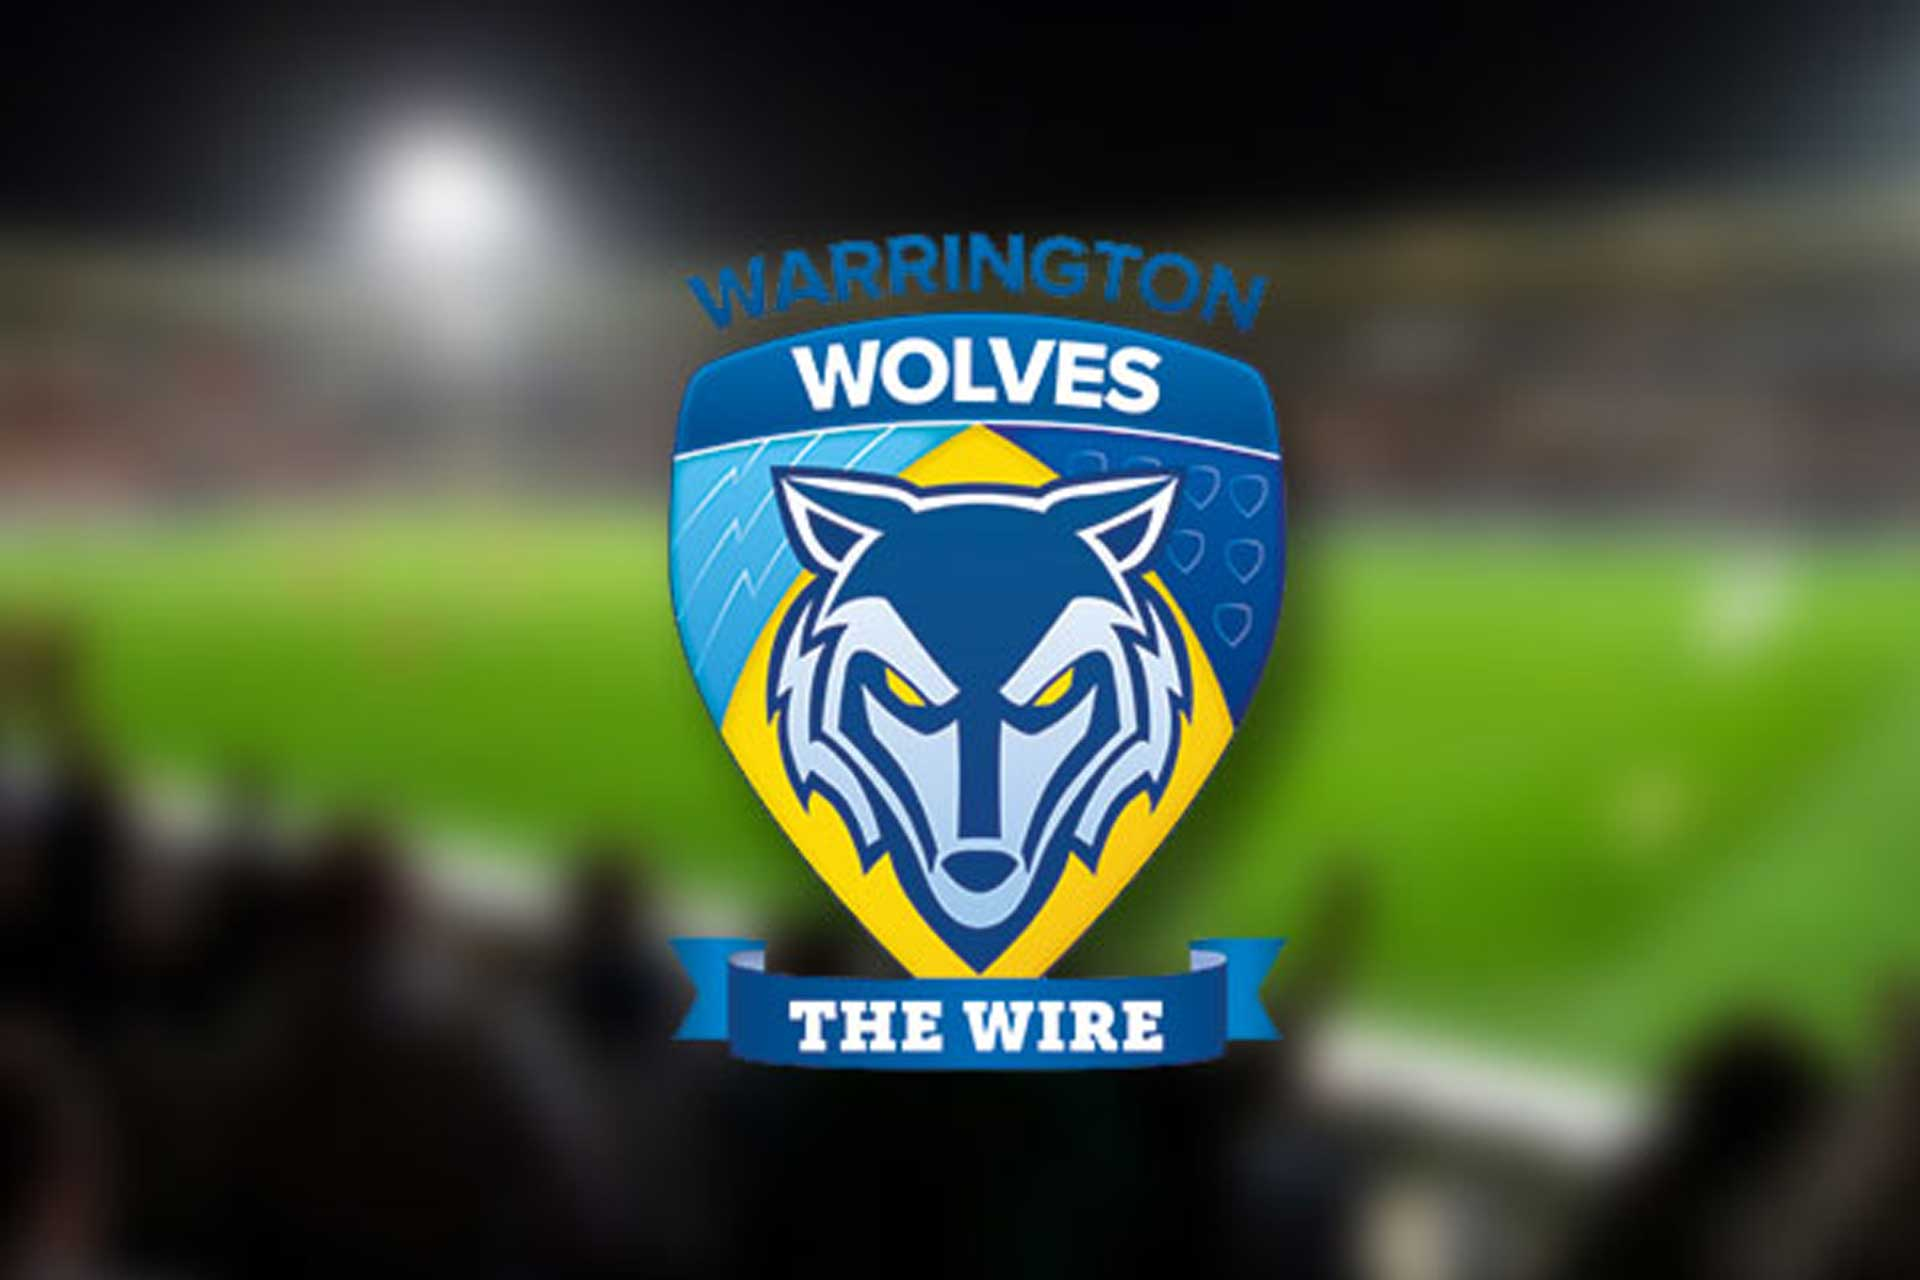 Warrington Wolves club badge